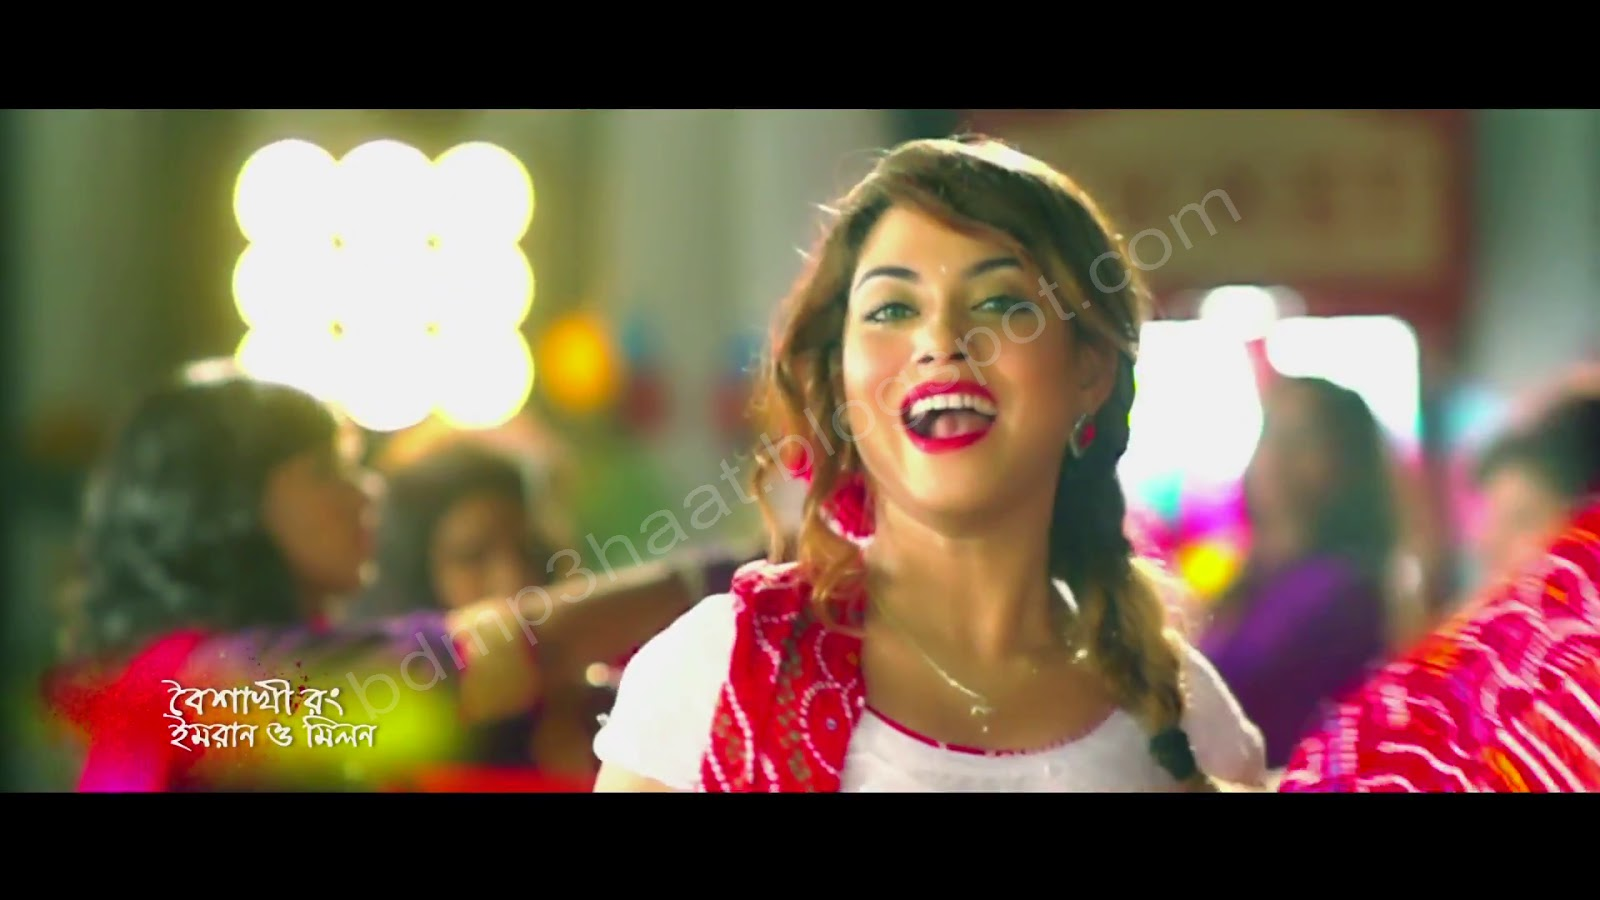 Boisakhi Rong - New Full HD Video Song - Imran & Milon 2016